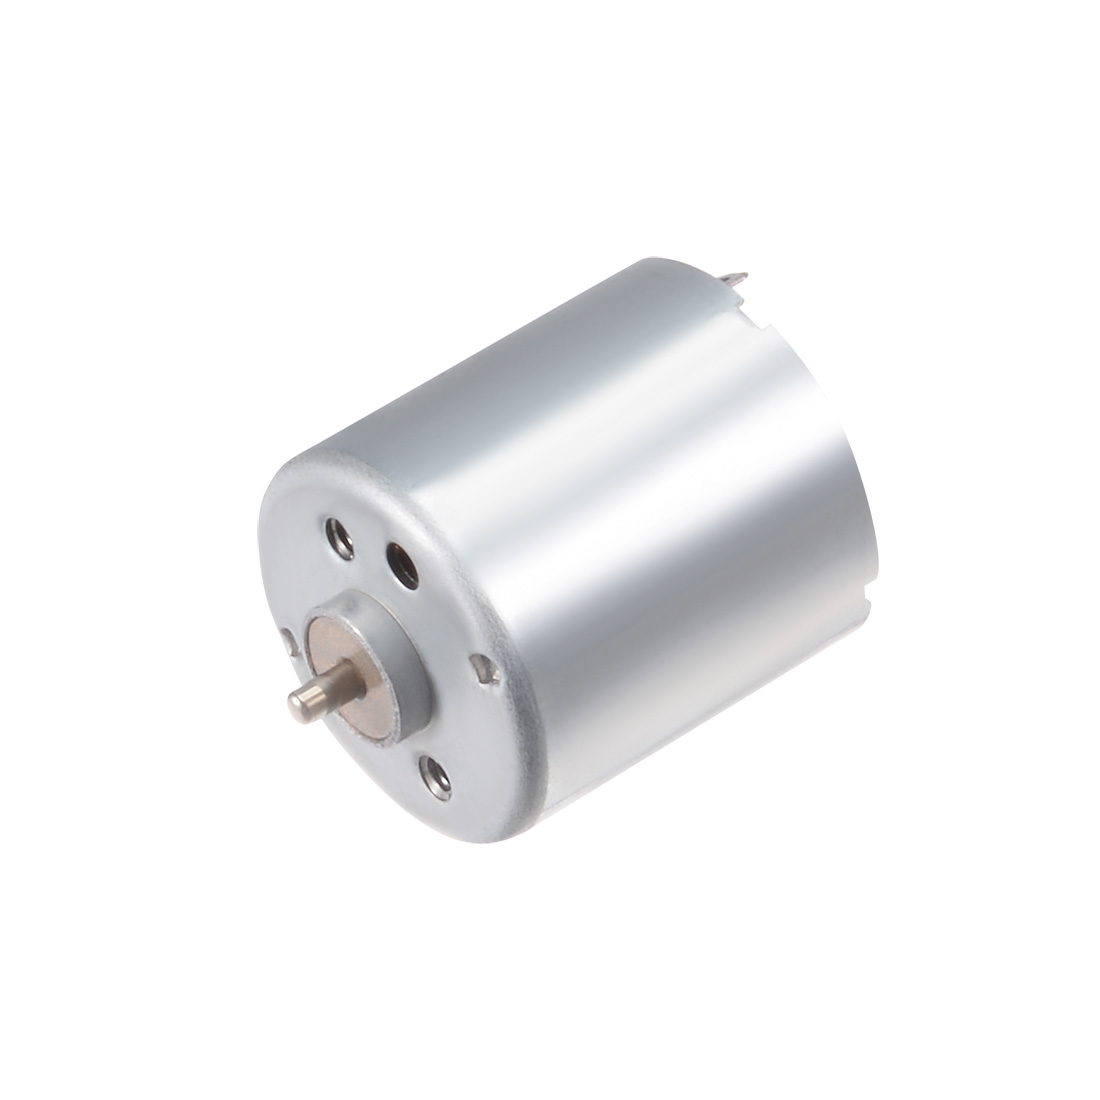 Small Motor DC 3V 9500RPM High Speed Motor for DIY Hobby Toy Cars